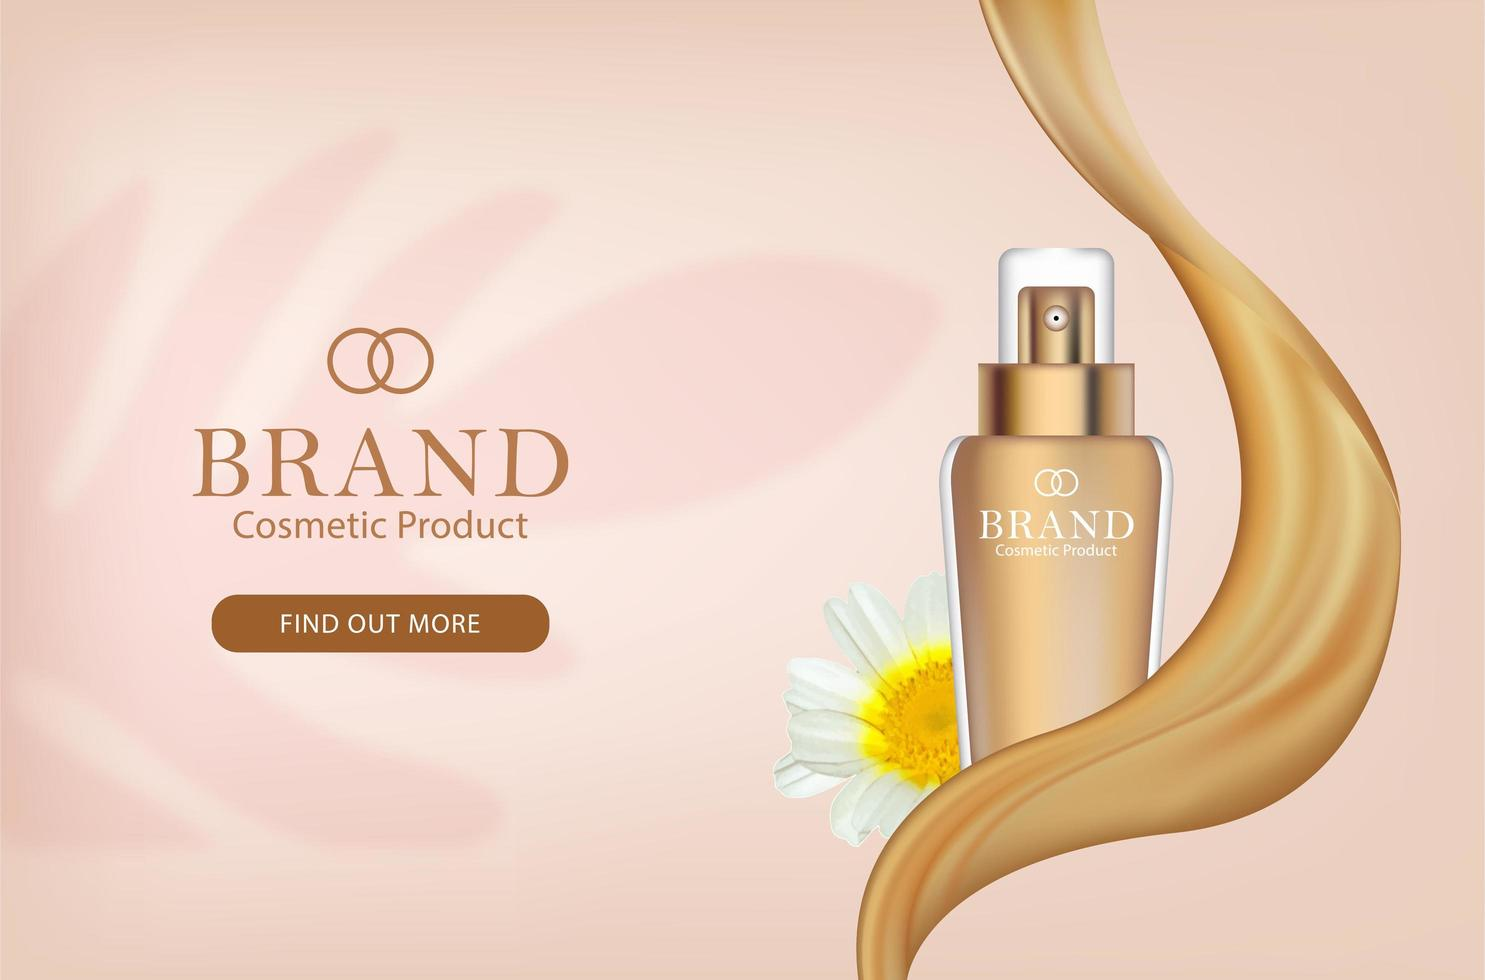 Promotional Banner for Facial Cosmetics  vector